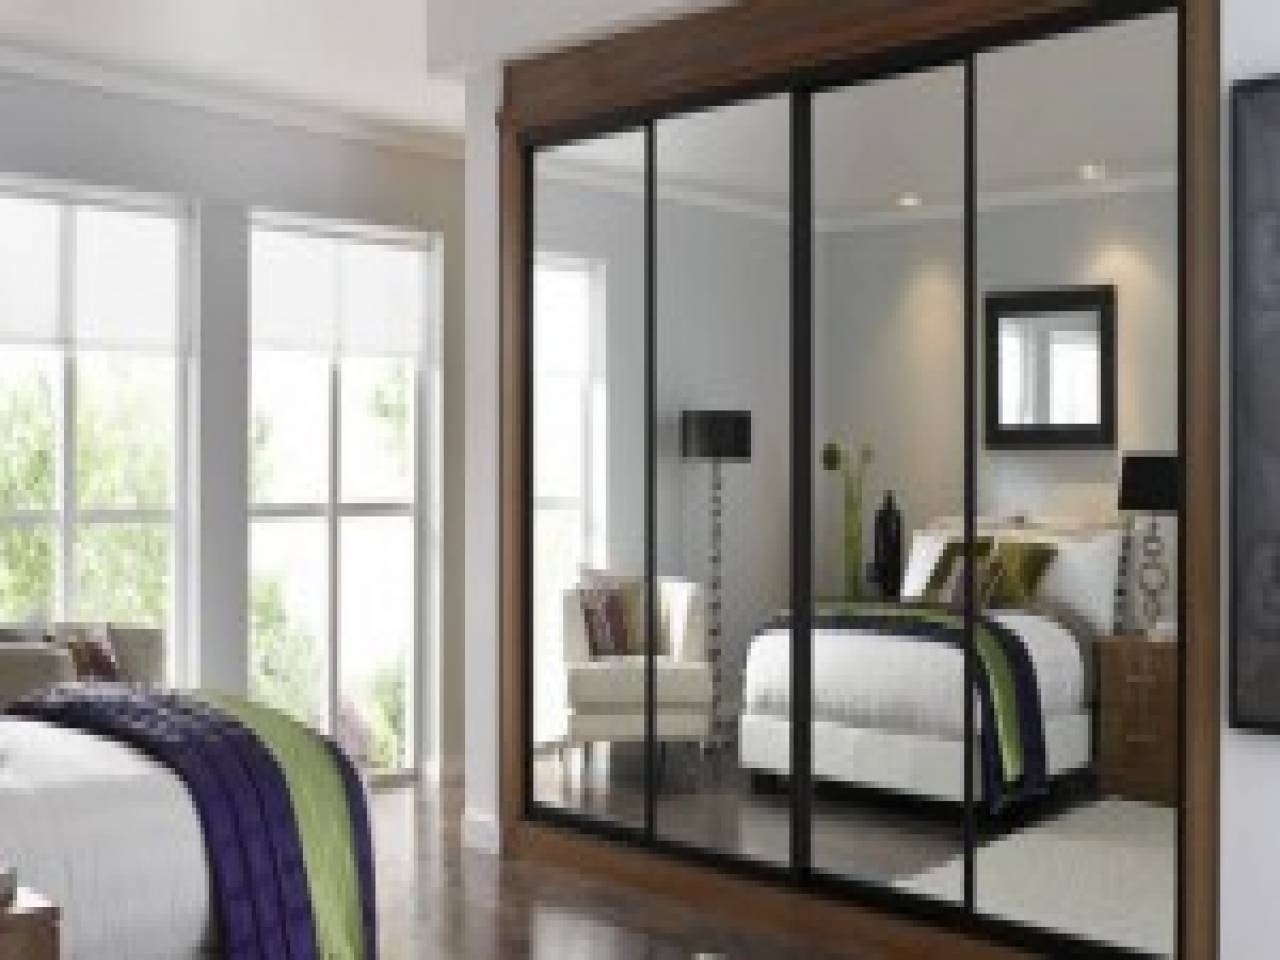 ikea mirror closet doors choice image doors design ideas bifold closet doors ikea wooden sliding closet